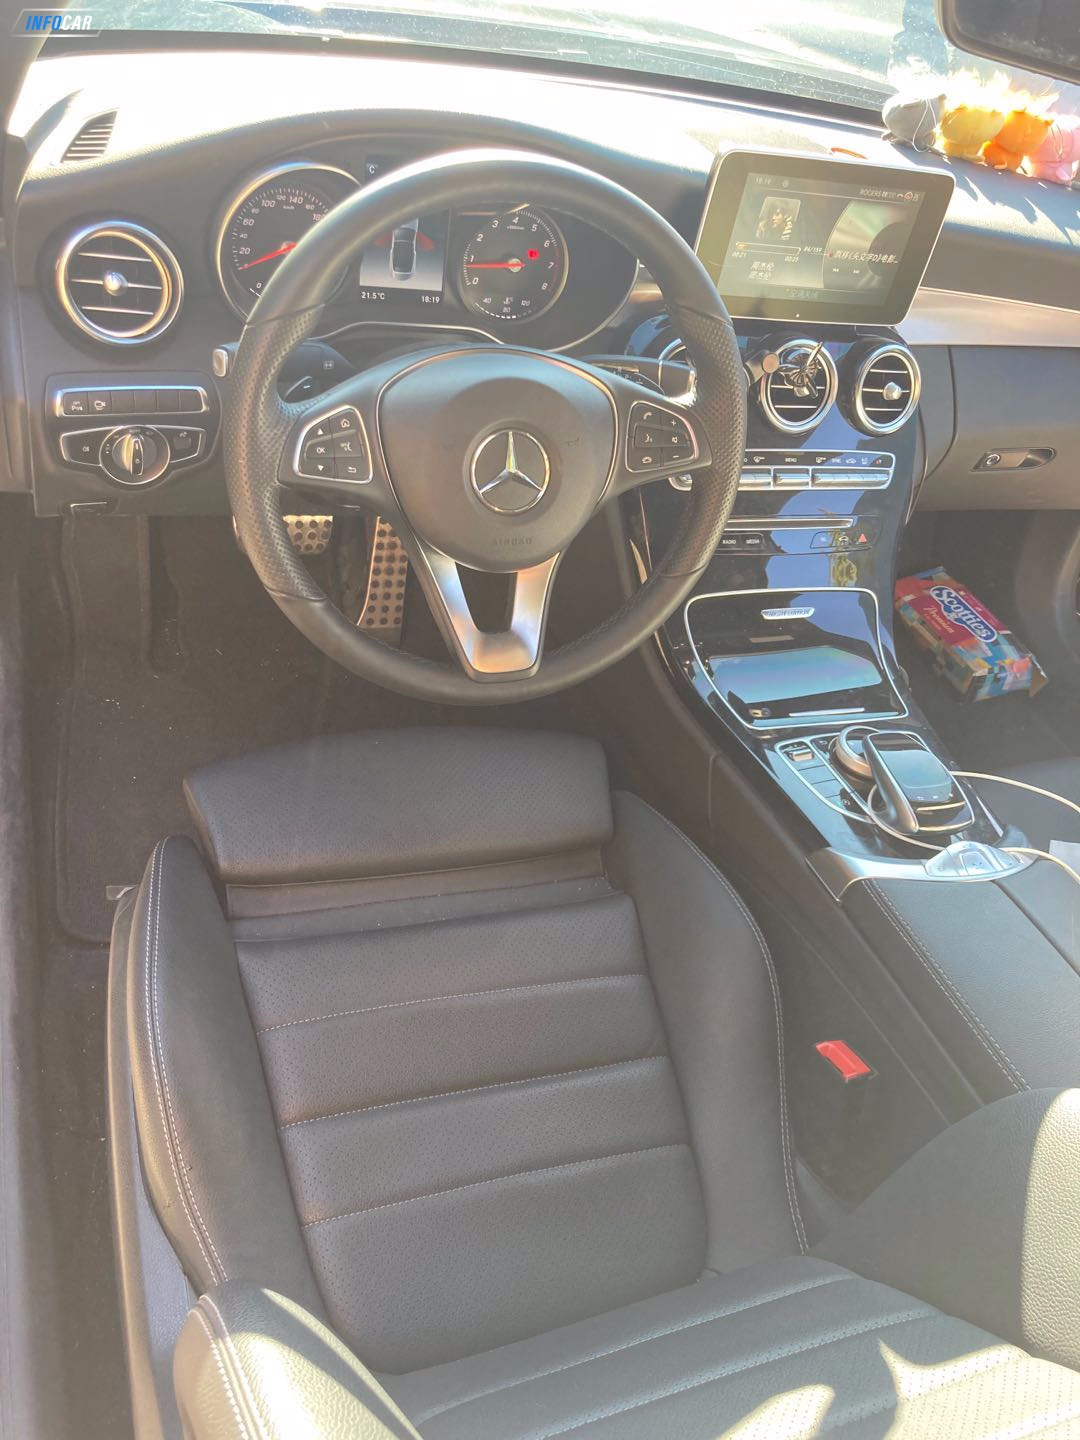 2018 Mercedes-Benz C-Class C300 Convertible - INFOCAR - Toronto's Most Comprehensive New and Used Auto Trading Platform